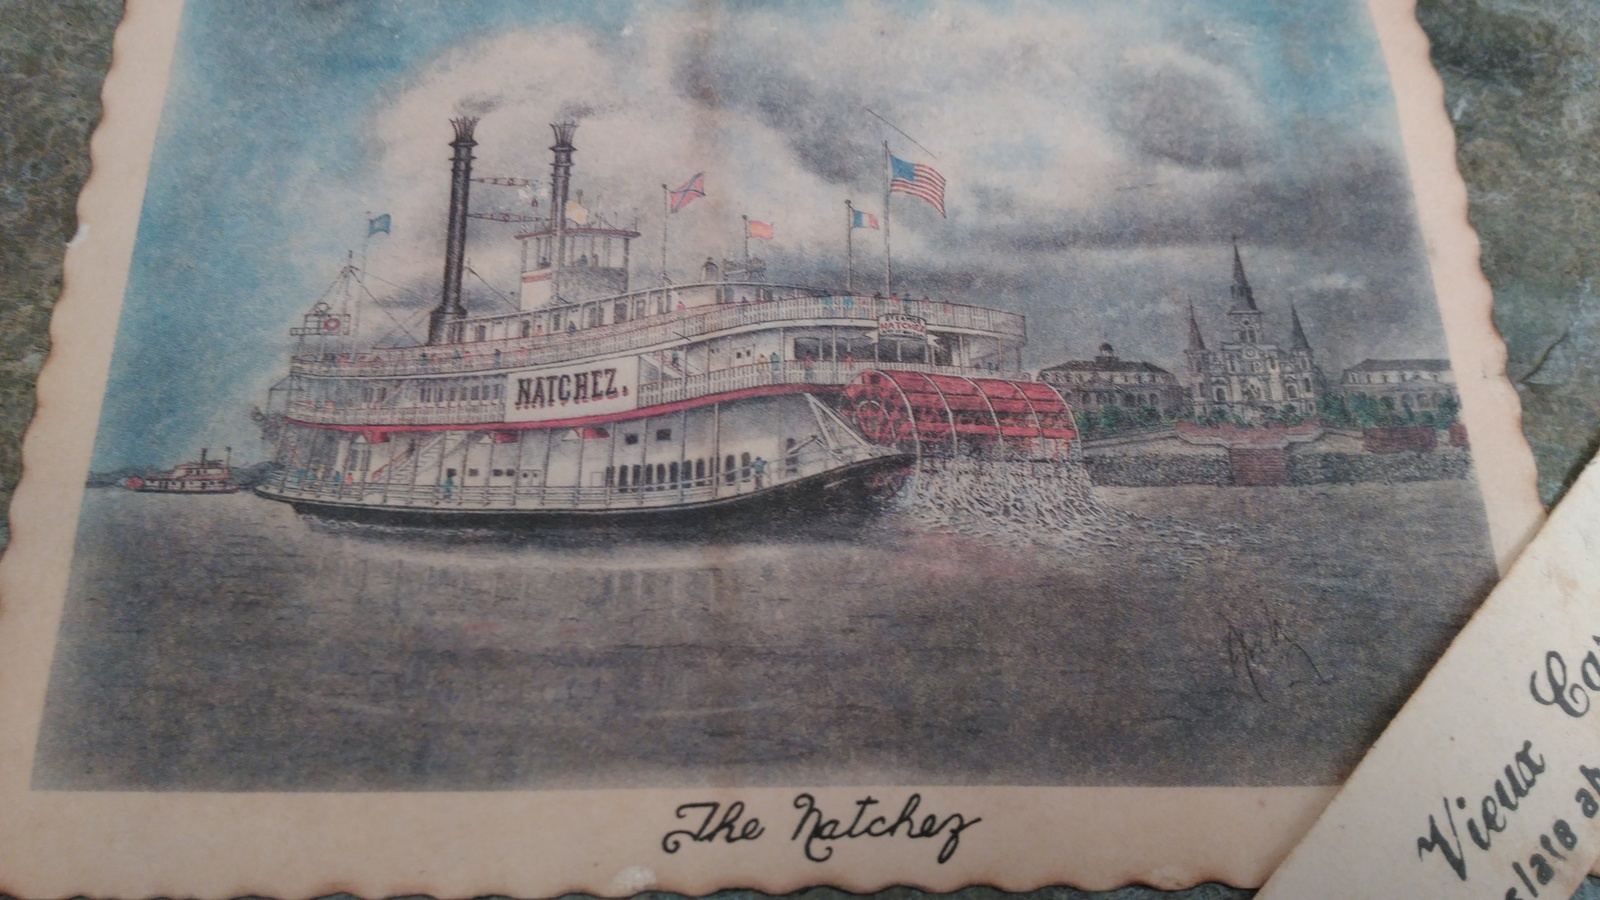 Steamboat Natchez Drawing on a Vieux Carre' Roofing Slate about 175 Years Old